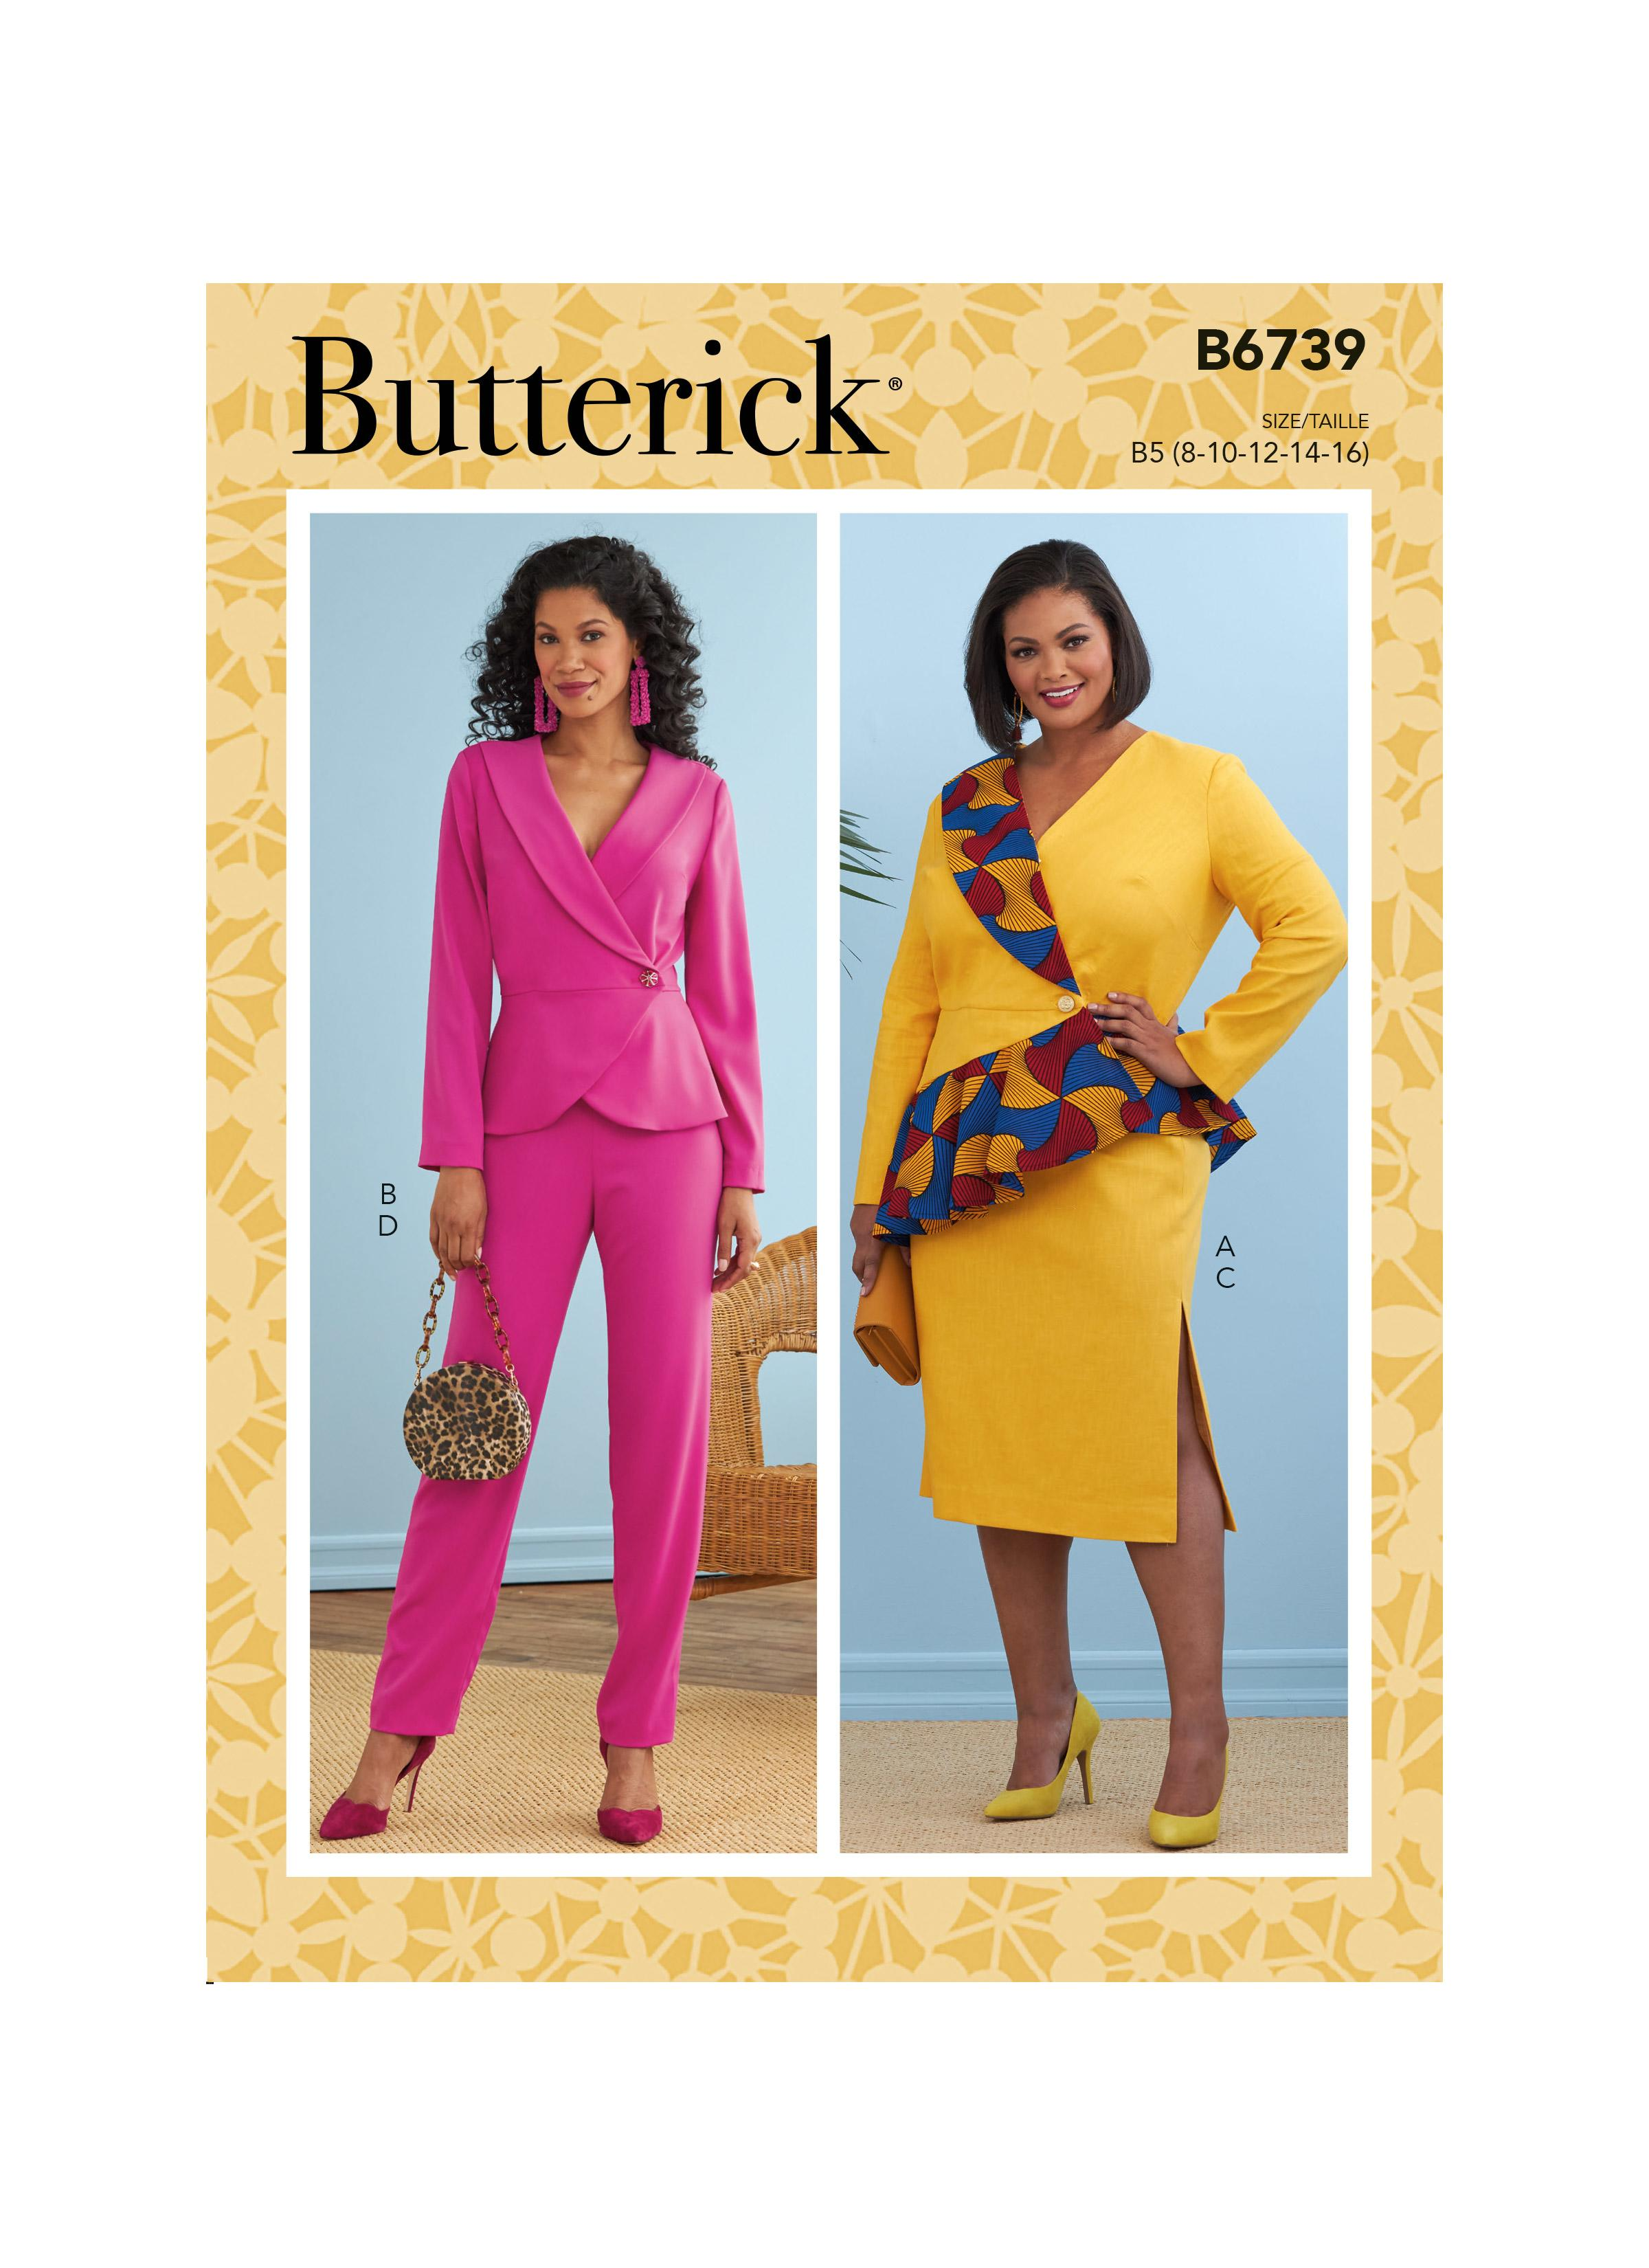 Butterick B6739 Misses' Jacket, Dress, Top, Skirt & Pants